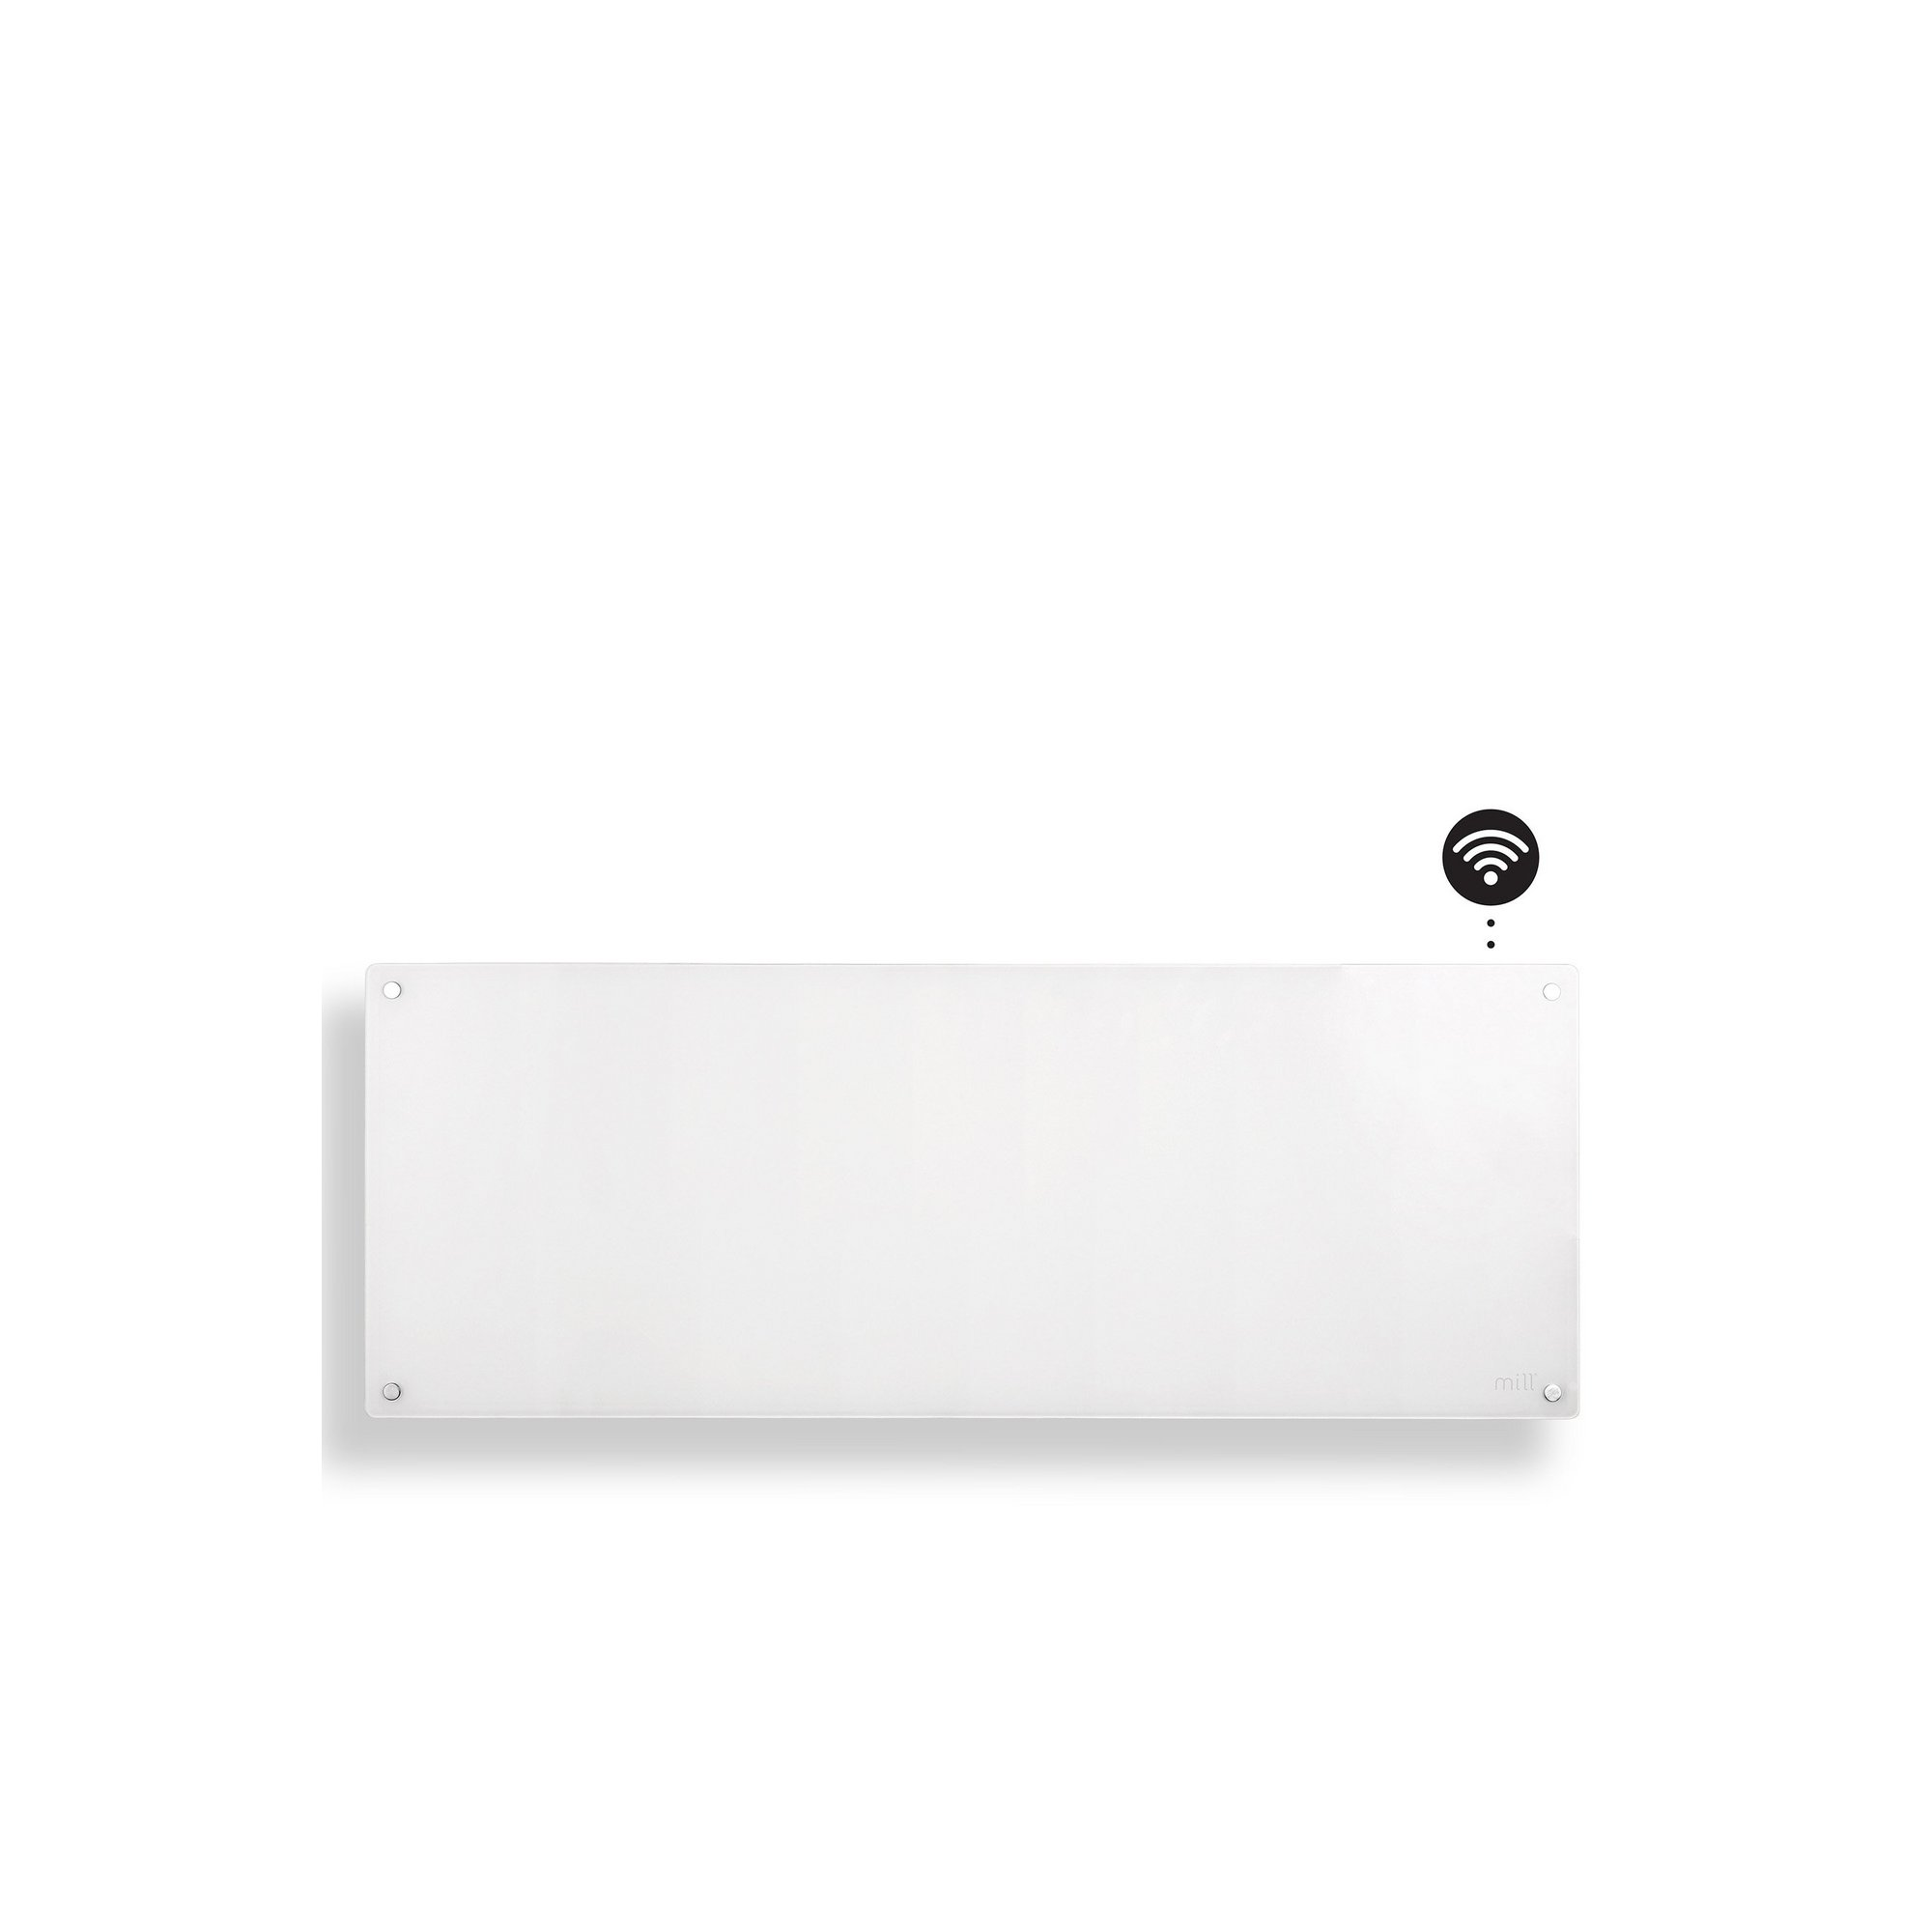 Image of Mill Heat 1200W Glass Front Panel Heater with WiFi